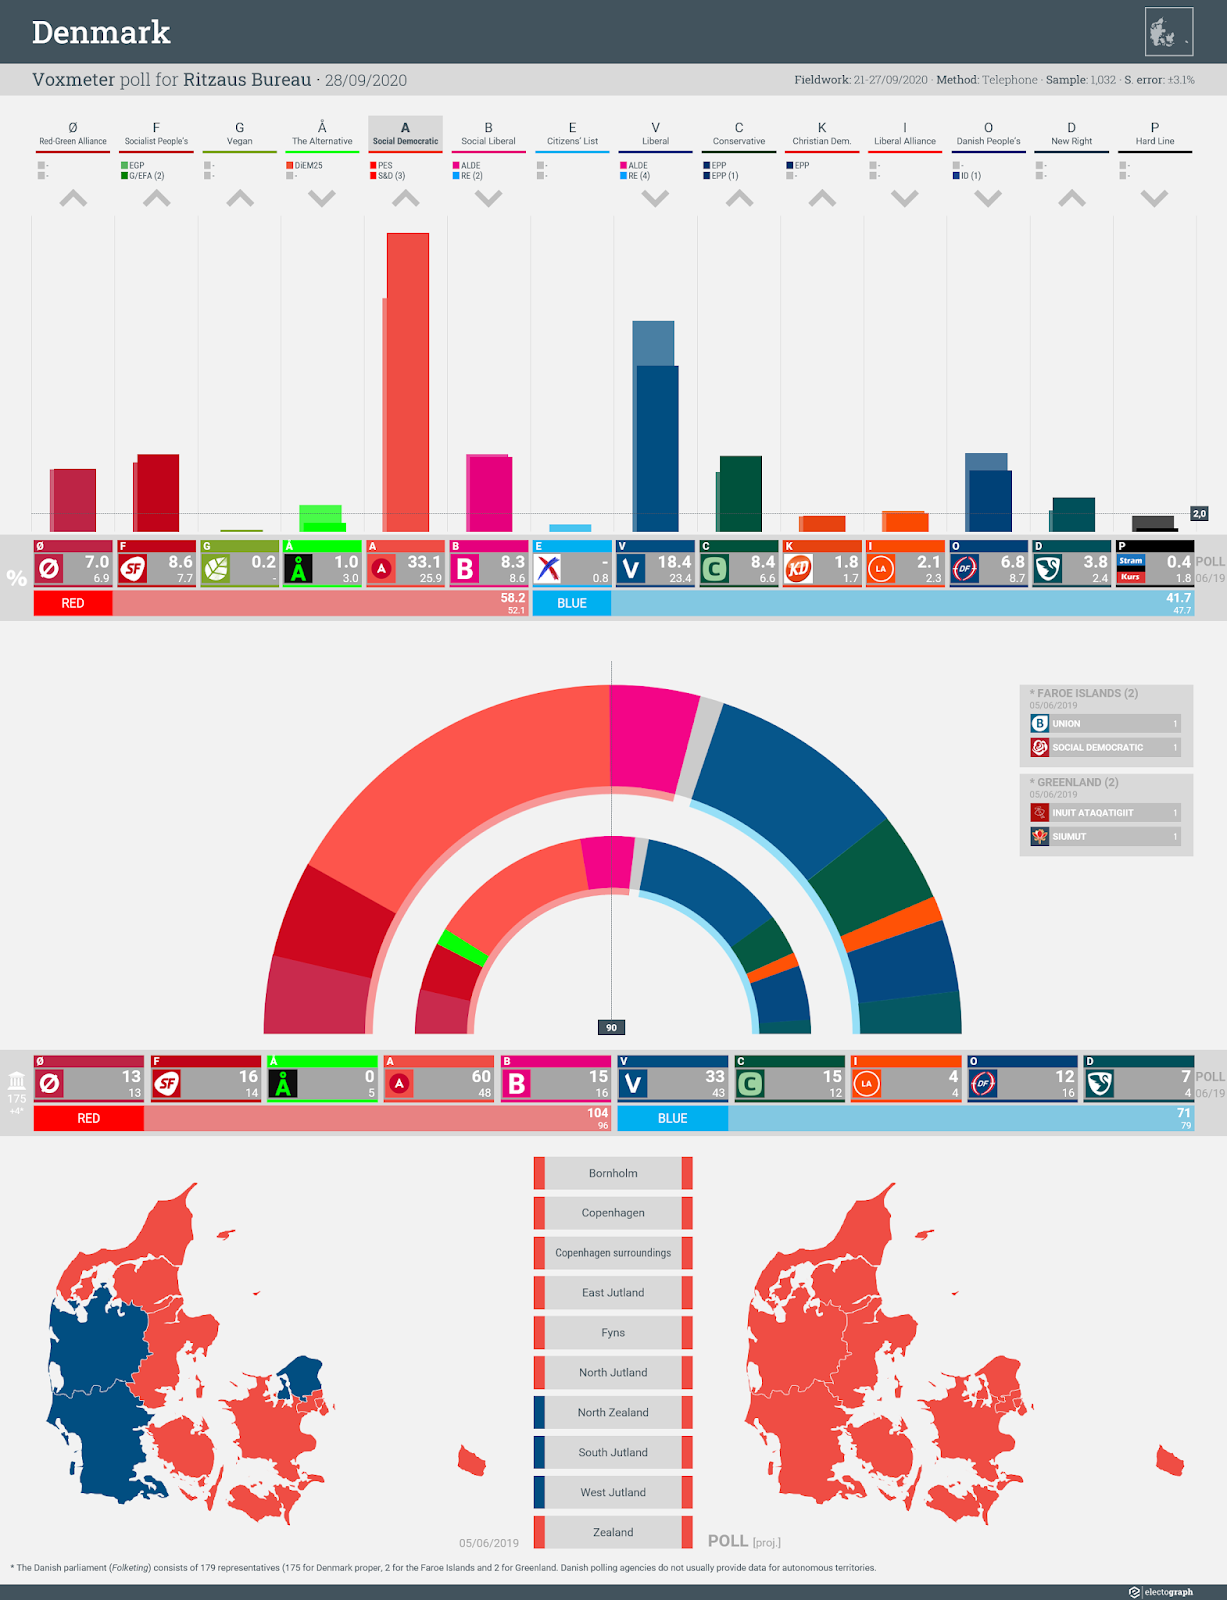 DENMARK: Voxmeter poll chart for Ritzaus Bureau, 28 September 2020